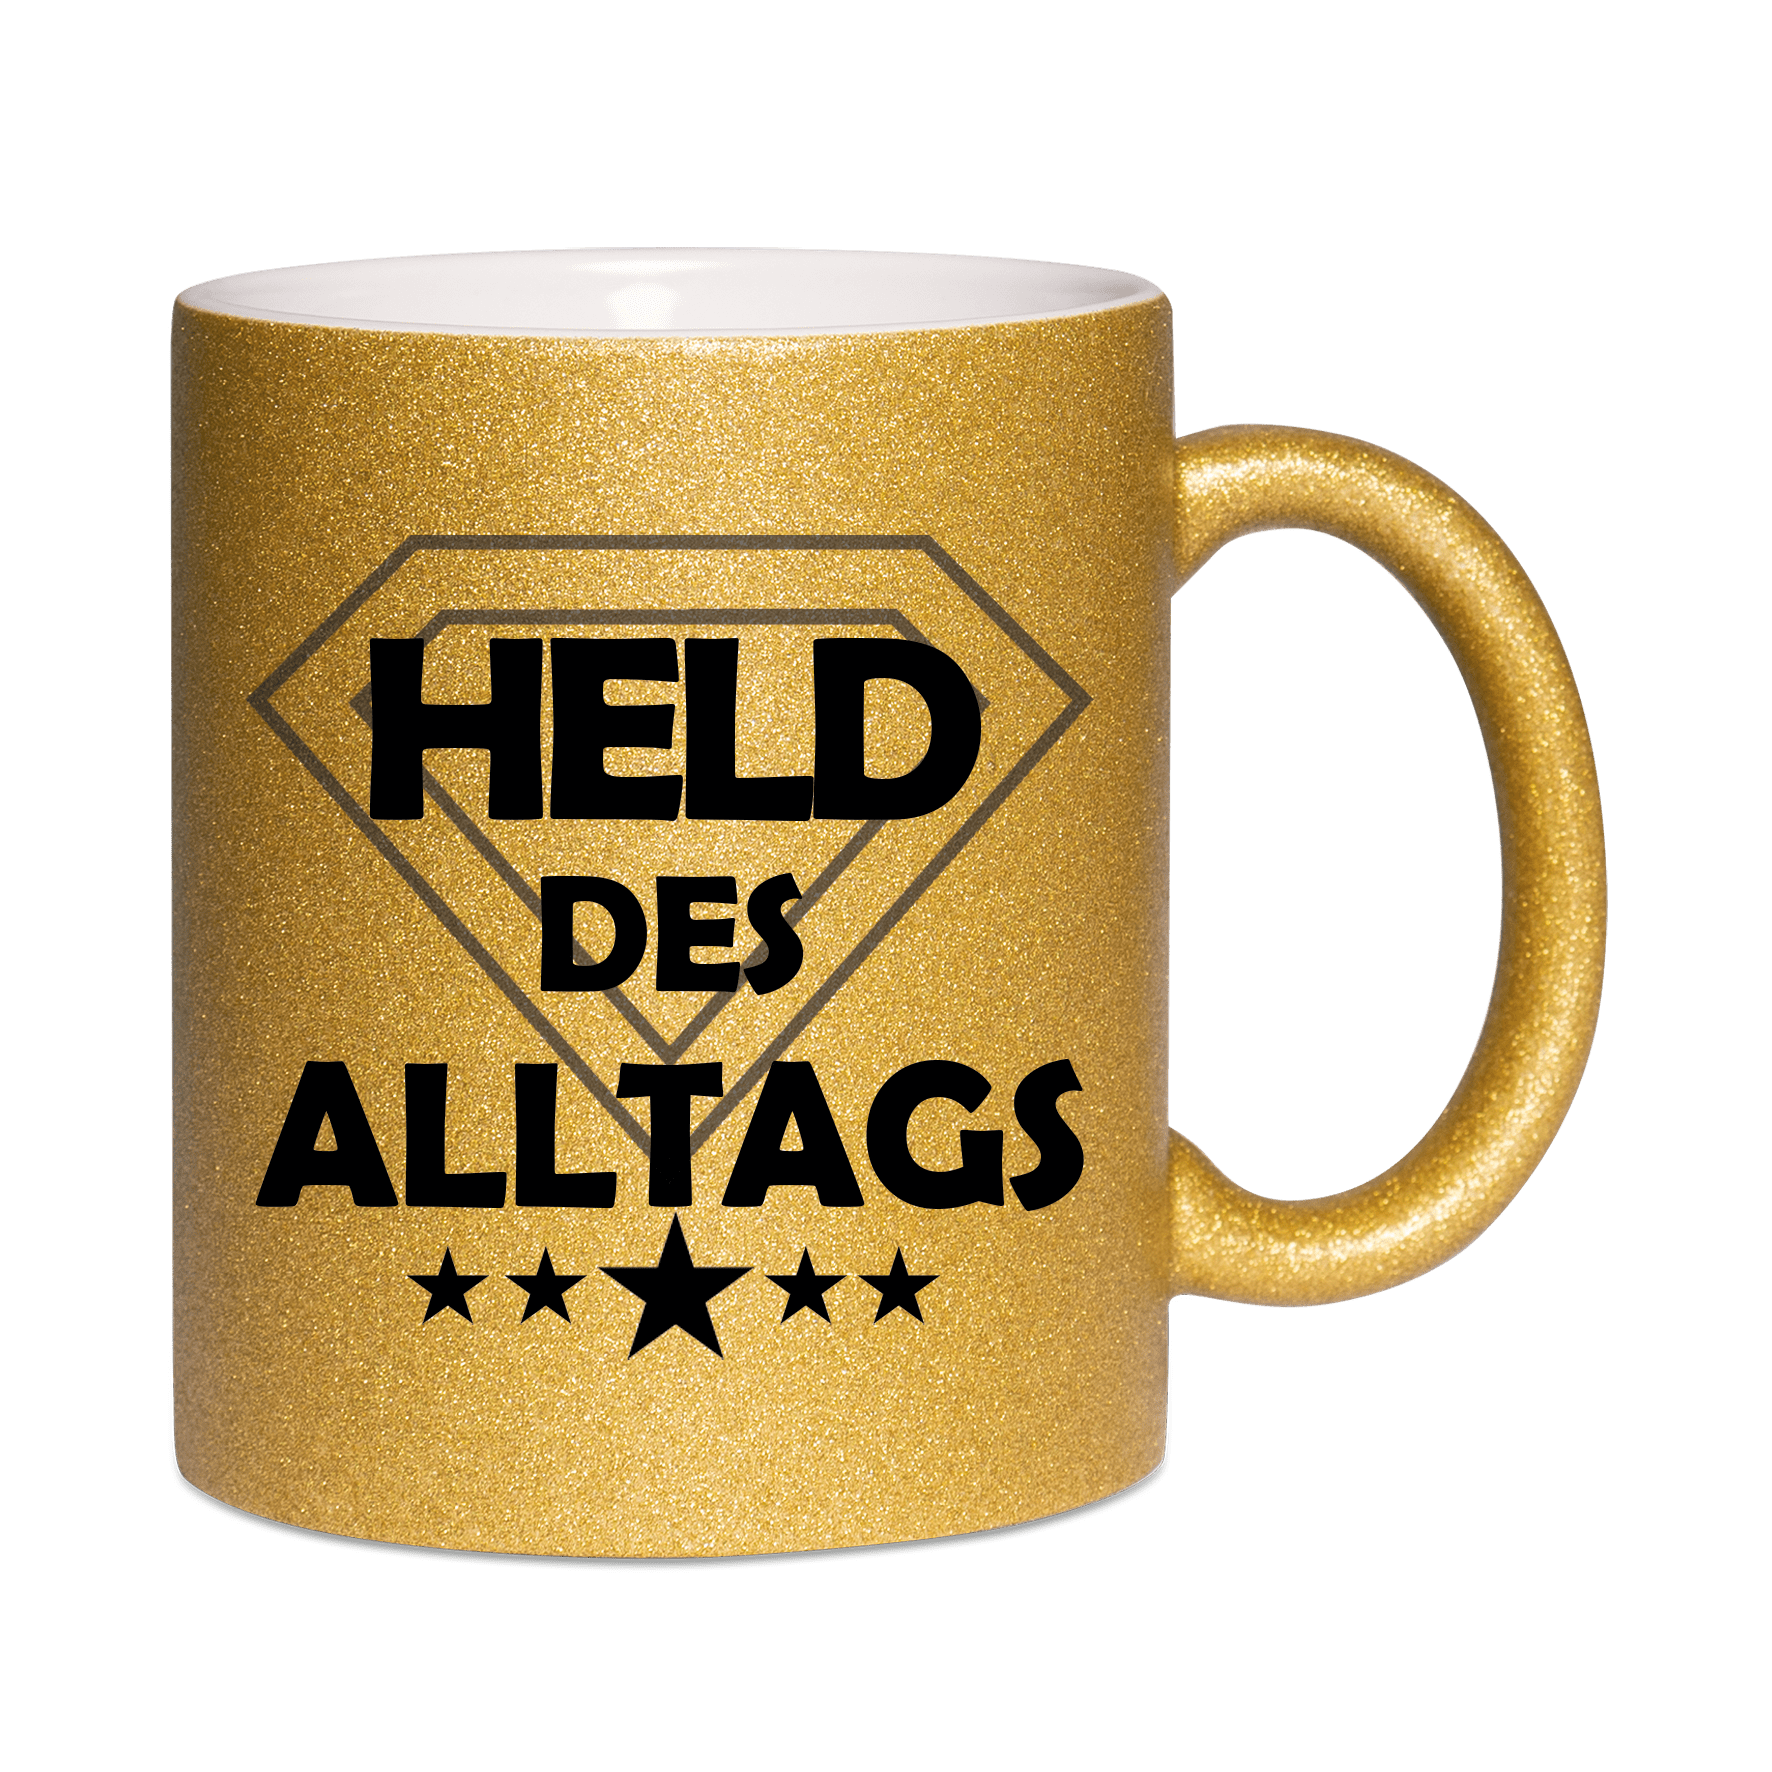 Held des Alltags